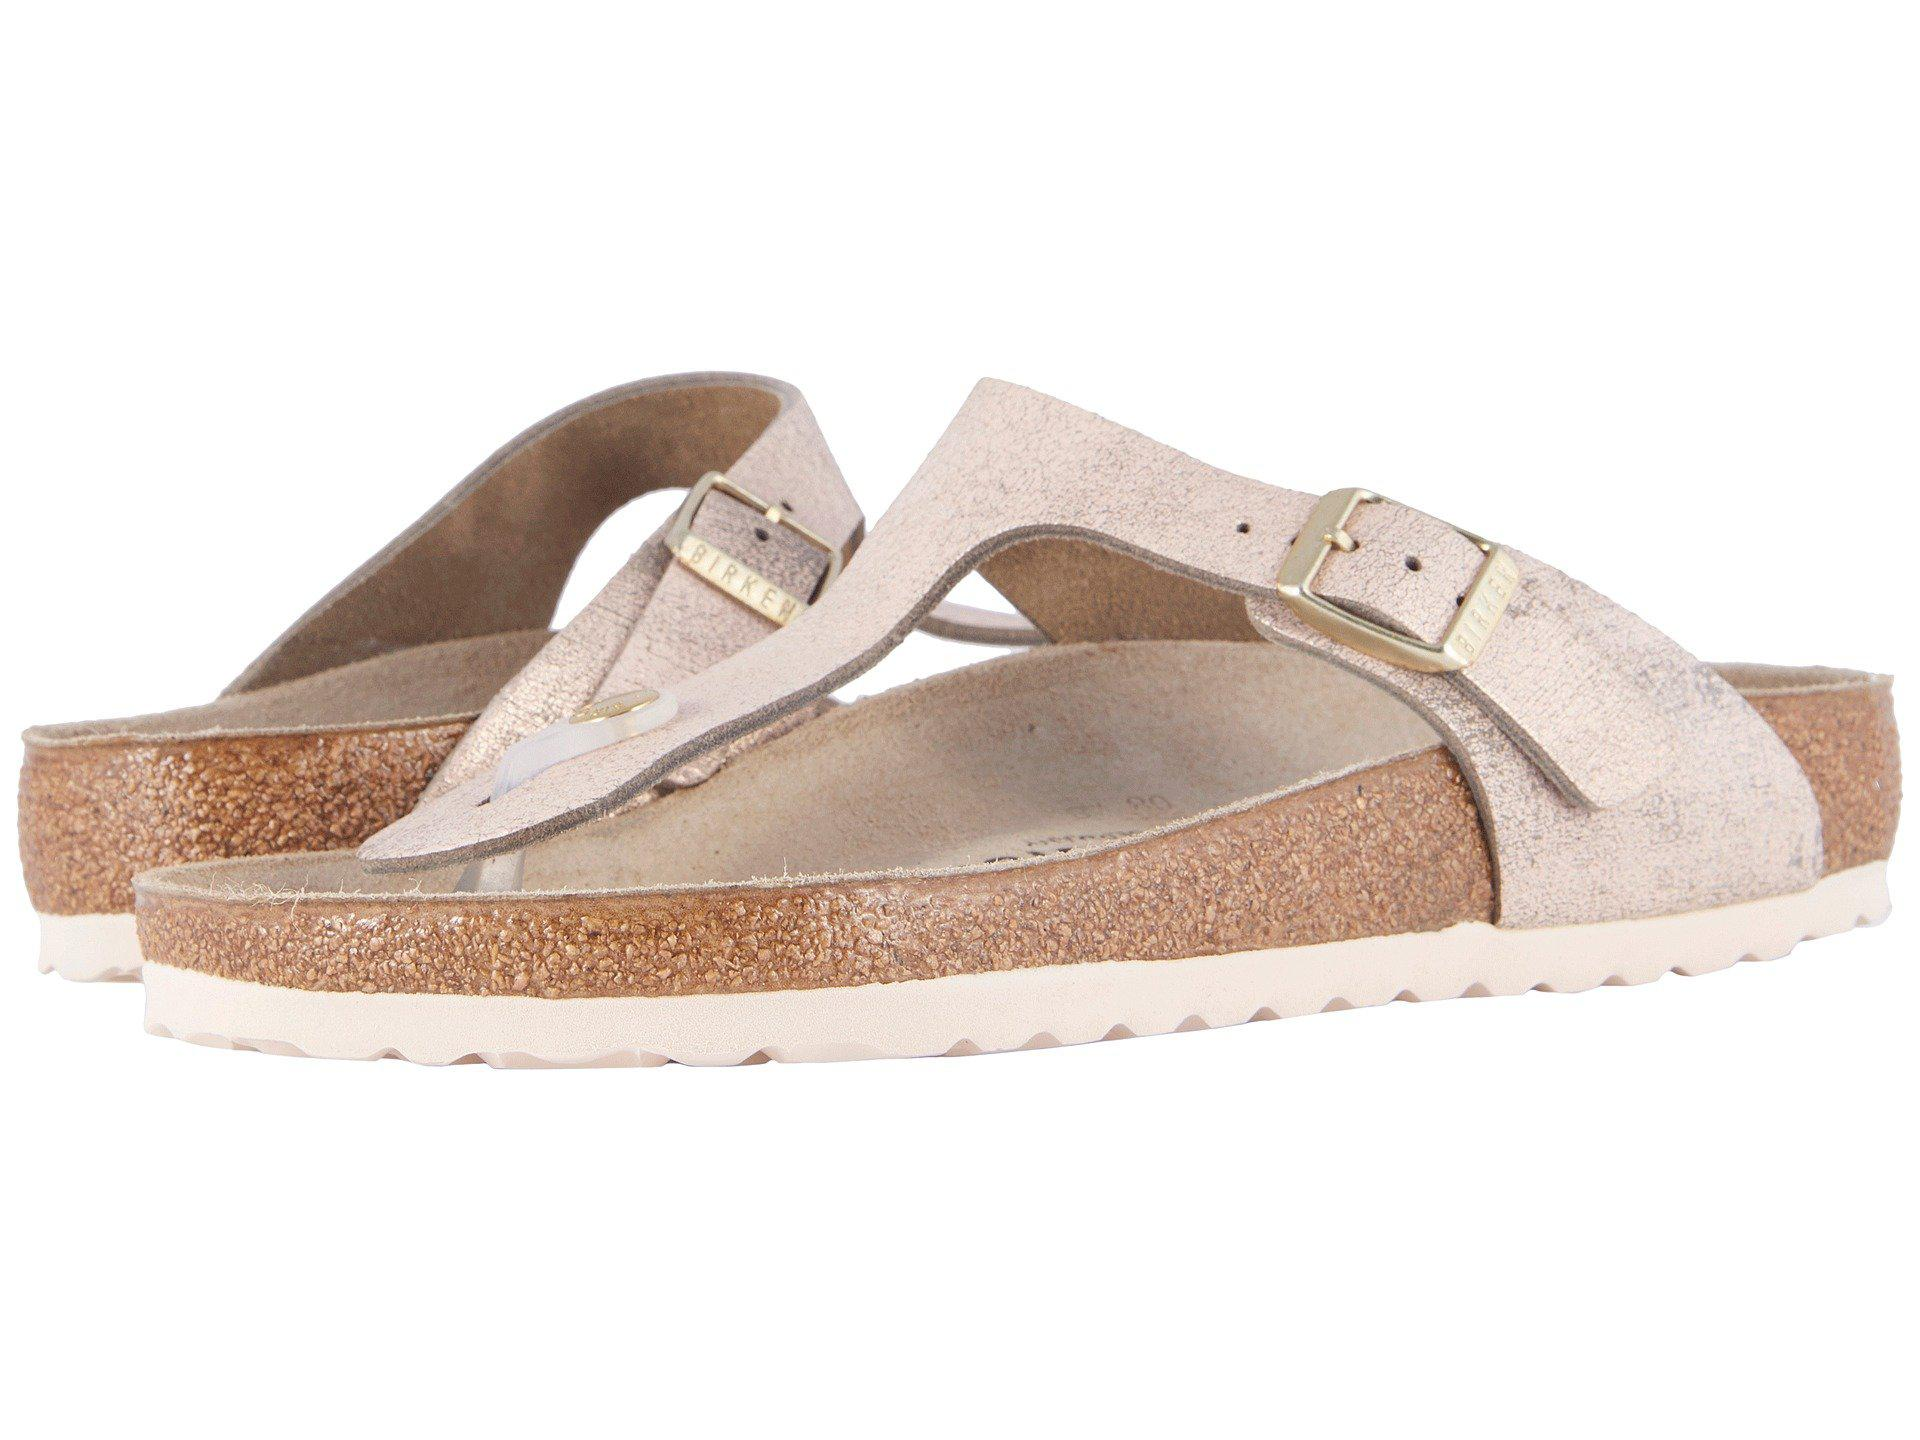 cec09ead3222f Lyst - Birkenstock Gizeh (washed Metallic Rose Leather) Women s ...